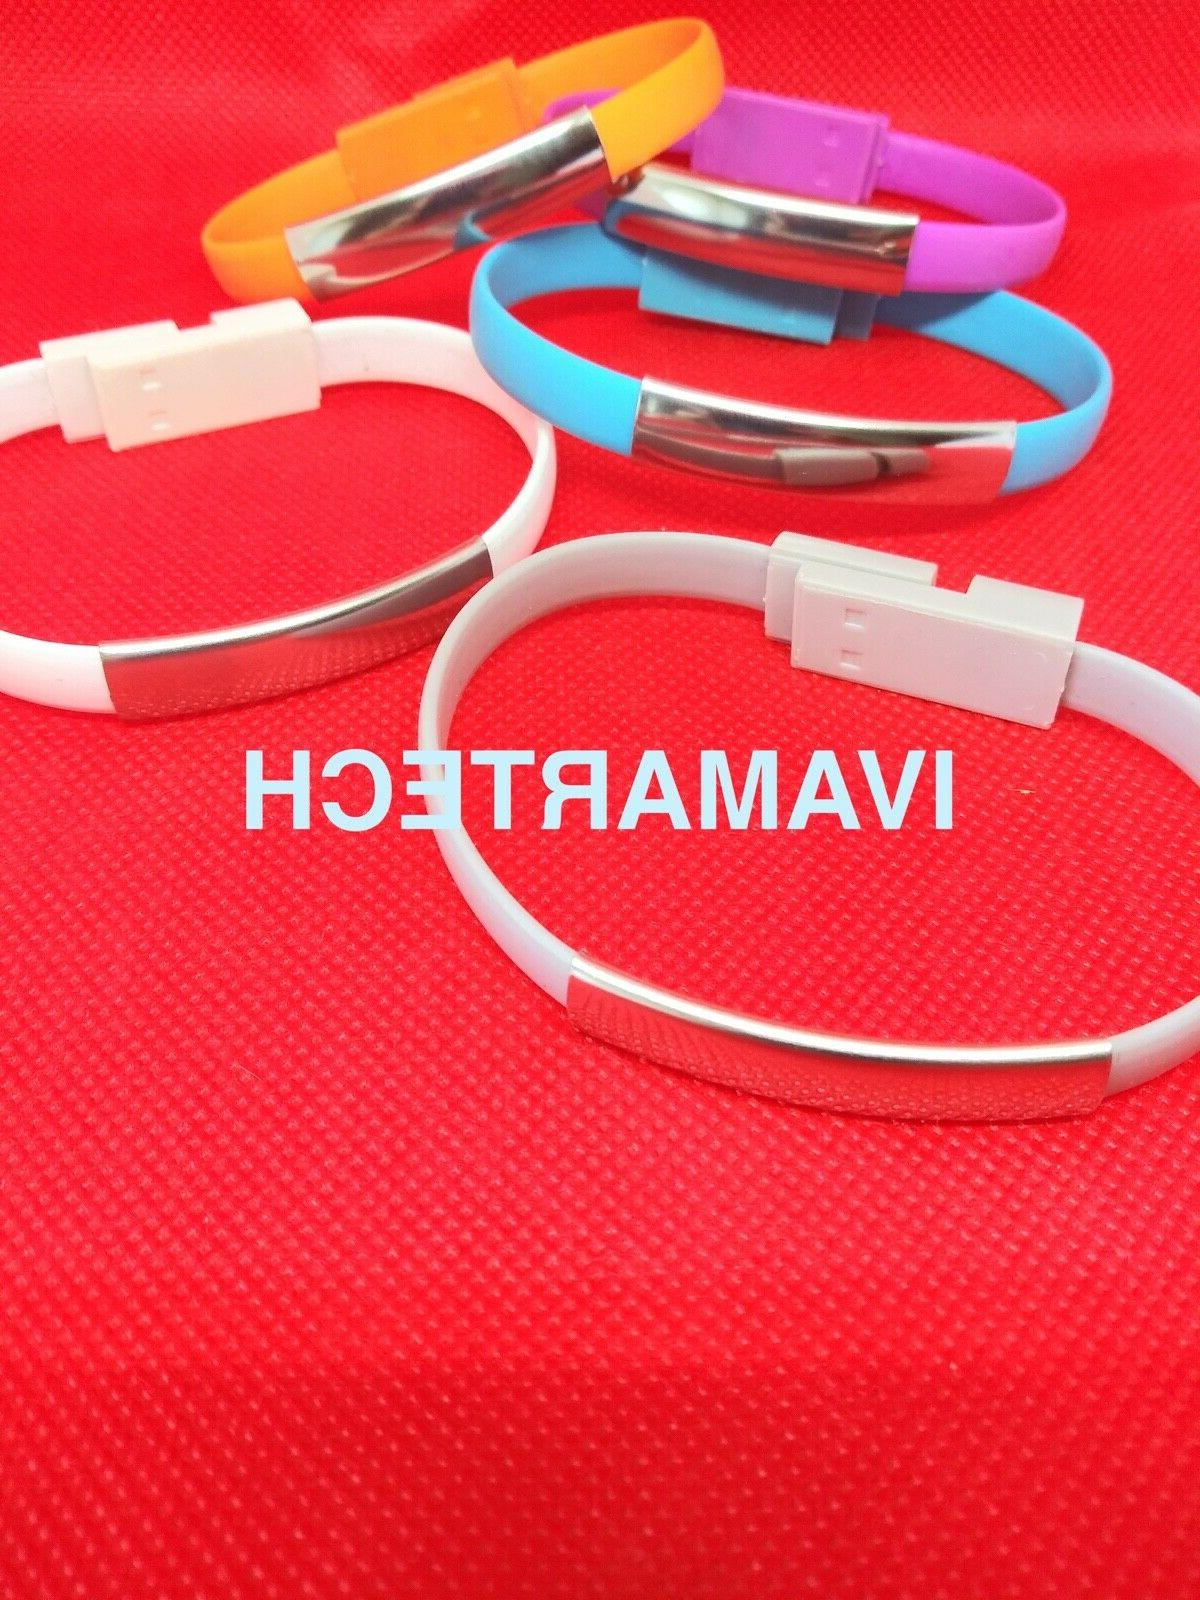 charger Cable New style charging Micro Data